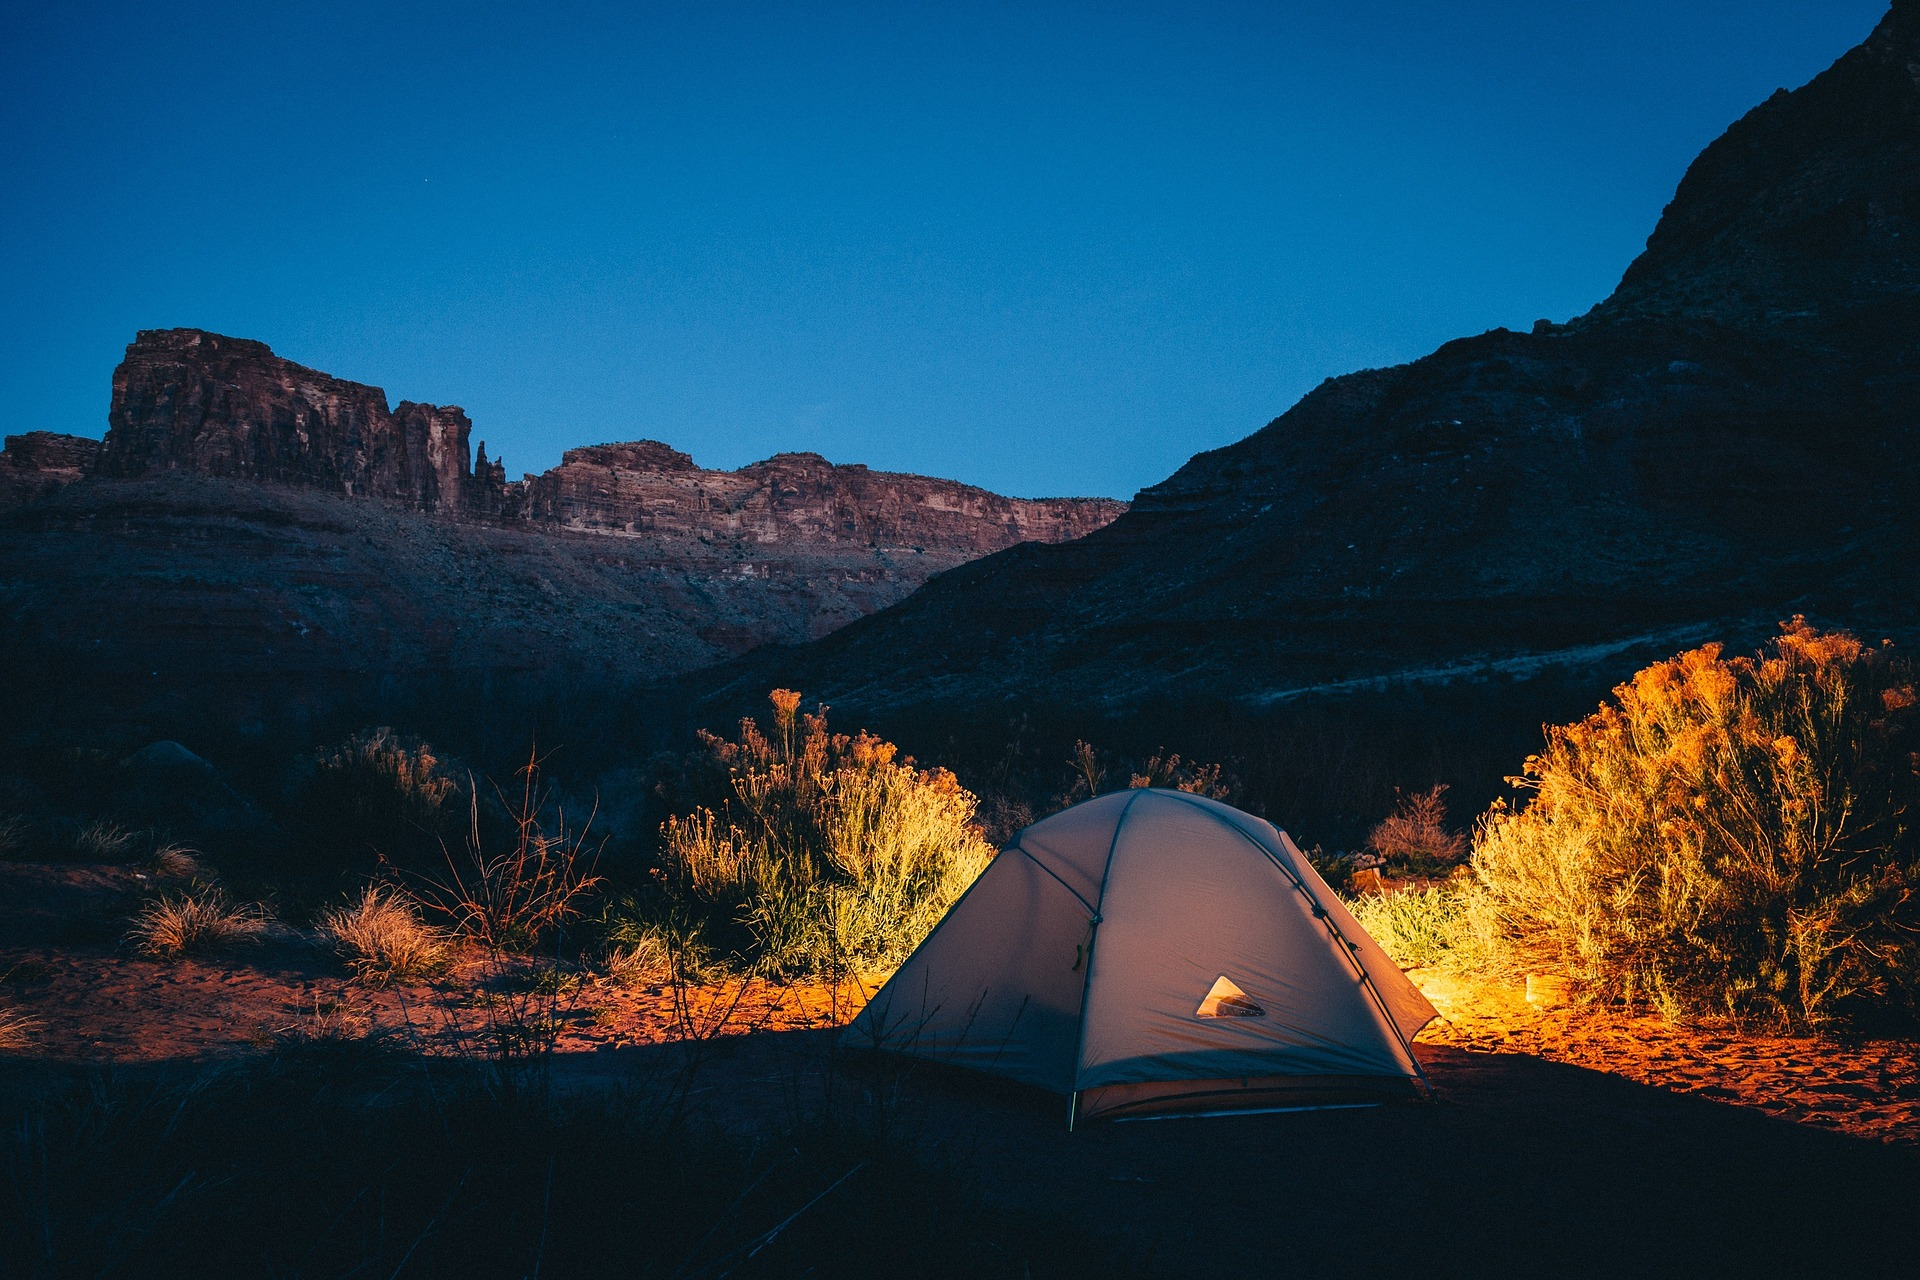 Best Camping Tips: All You Need Out in the Wilderness - Gildshire